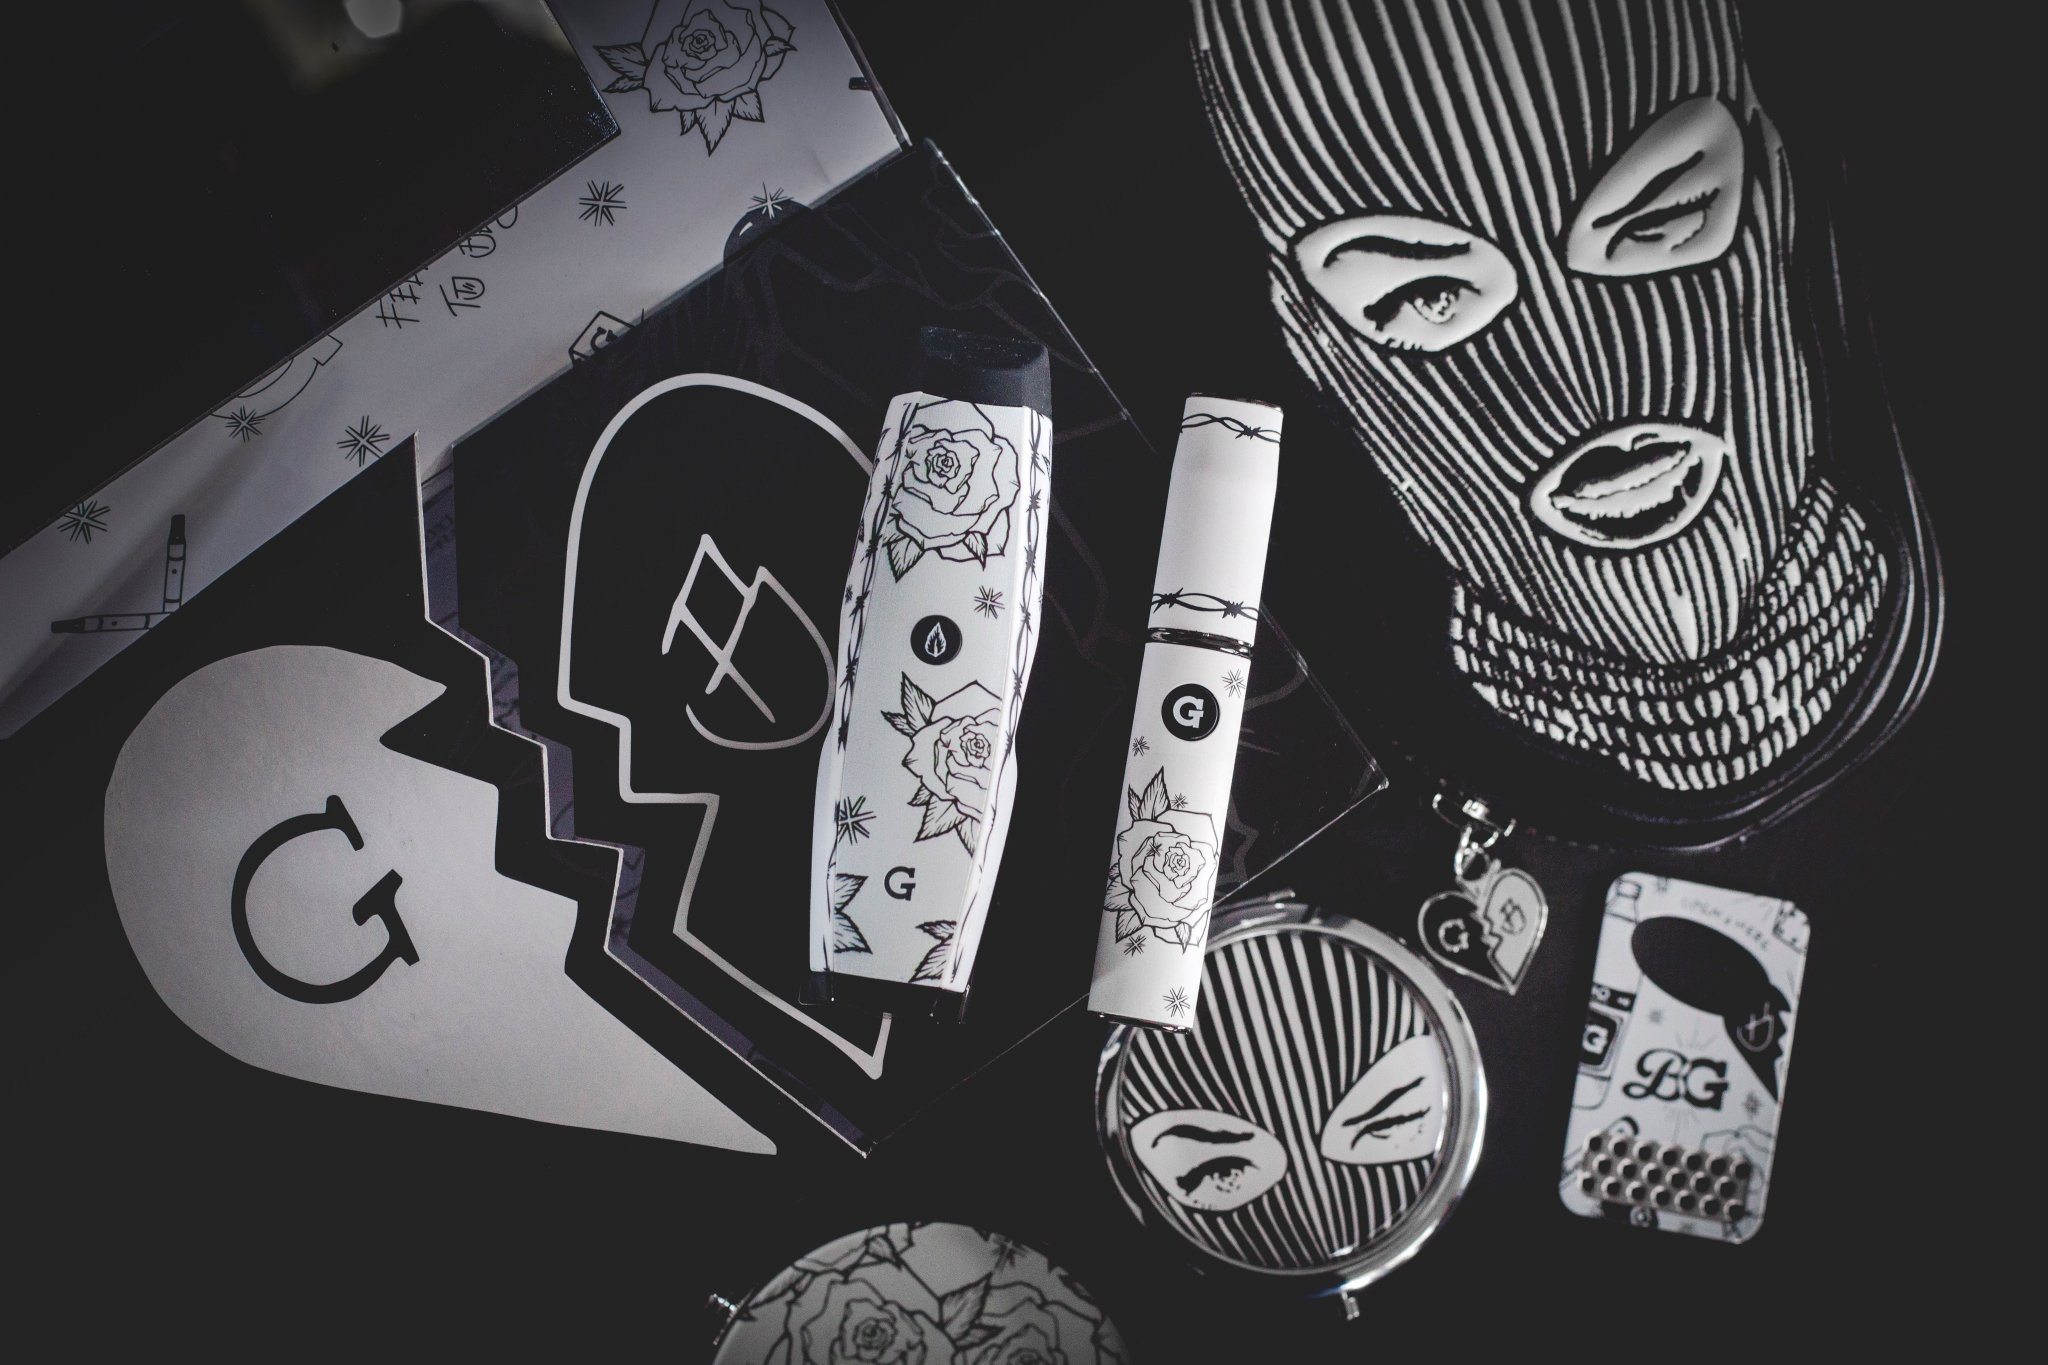 The @BADWOODX x @GPEN #FeelsGoodToBeBad collection is available now at https://t.co/04yYg4HhQ9 #BadwoodxGPen https://t.co/Q7Sw6PZDhP